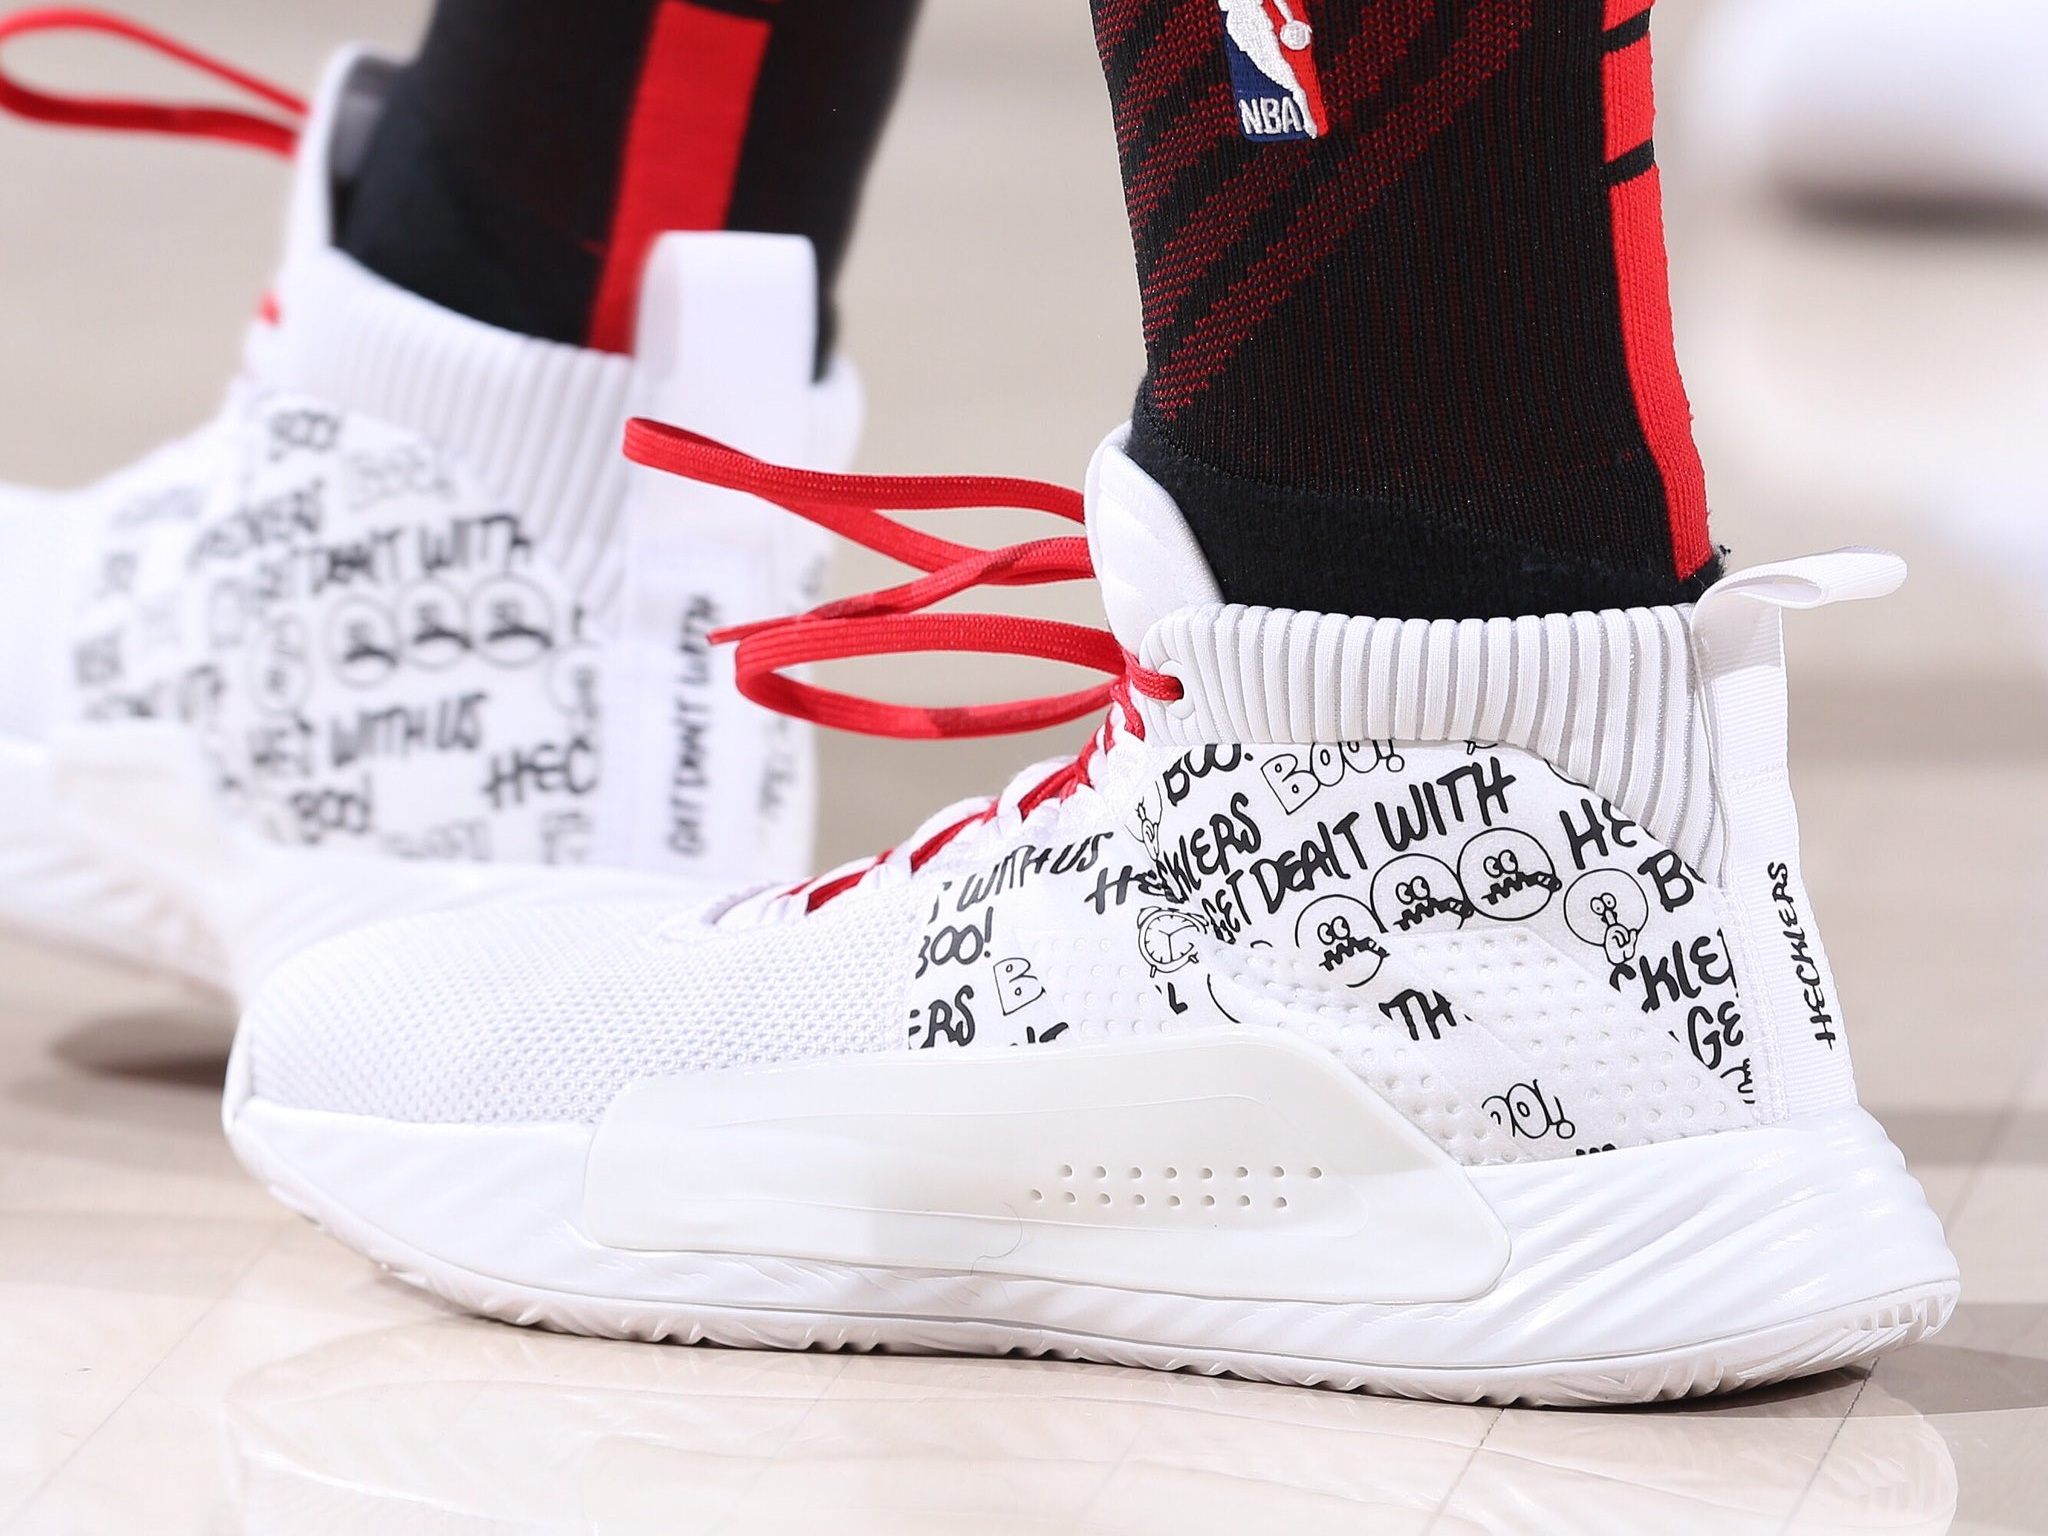 Damian Lillard rocking his Adidas Dame 5 - Portland Trail Blazers vs. Dallas Mavericks | March 20, 201933 Points12 Assists5 Rebounds2 Steals9-18 Shooting